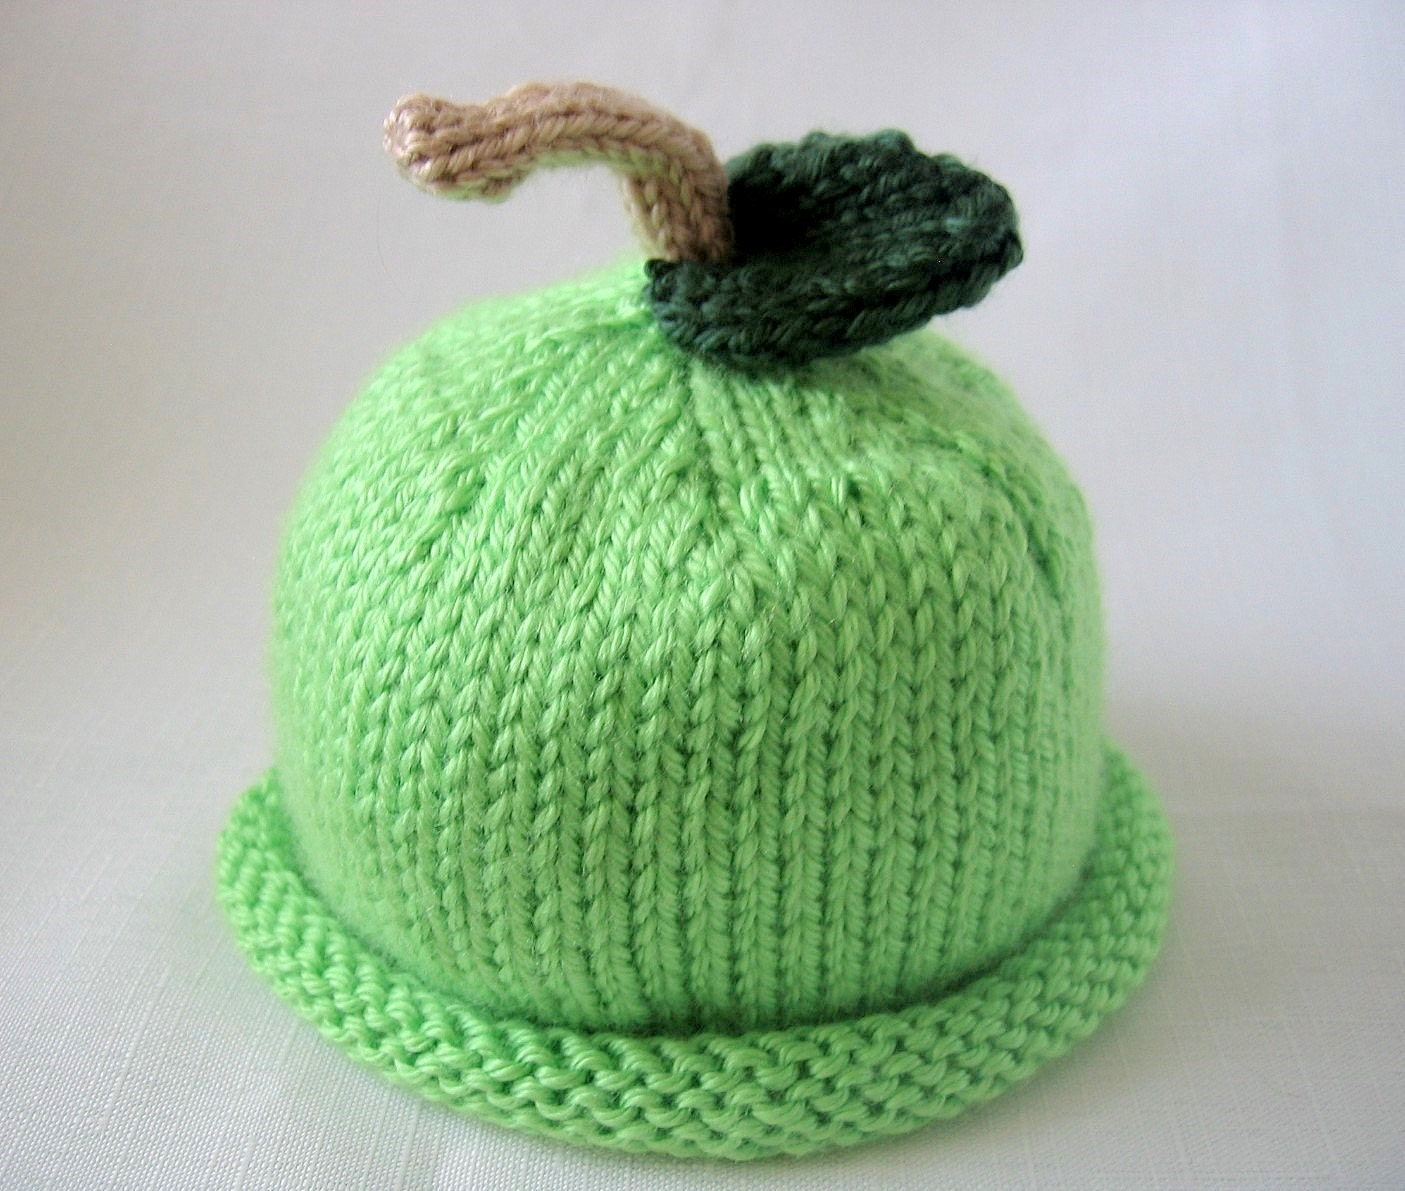 Apple Hat Knitting Pattern : ONE FUND Boston Beanies Green Apple Hat Knit Lime Baby Hat